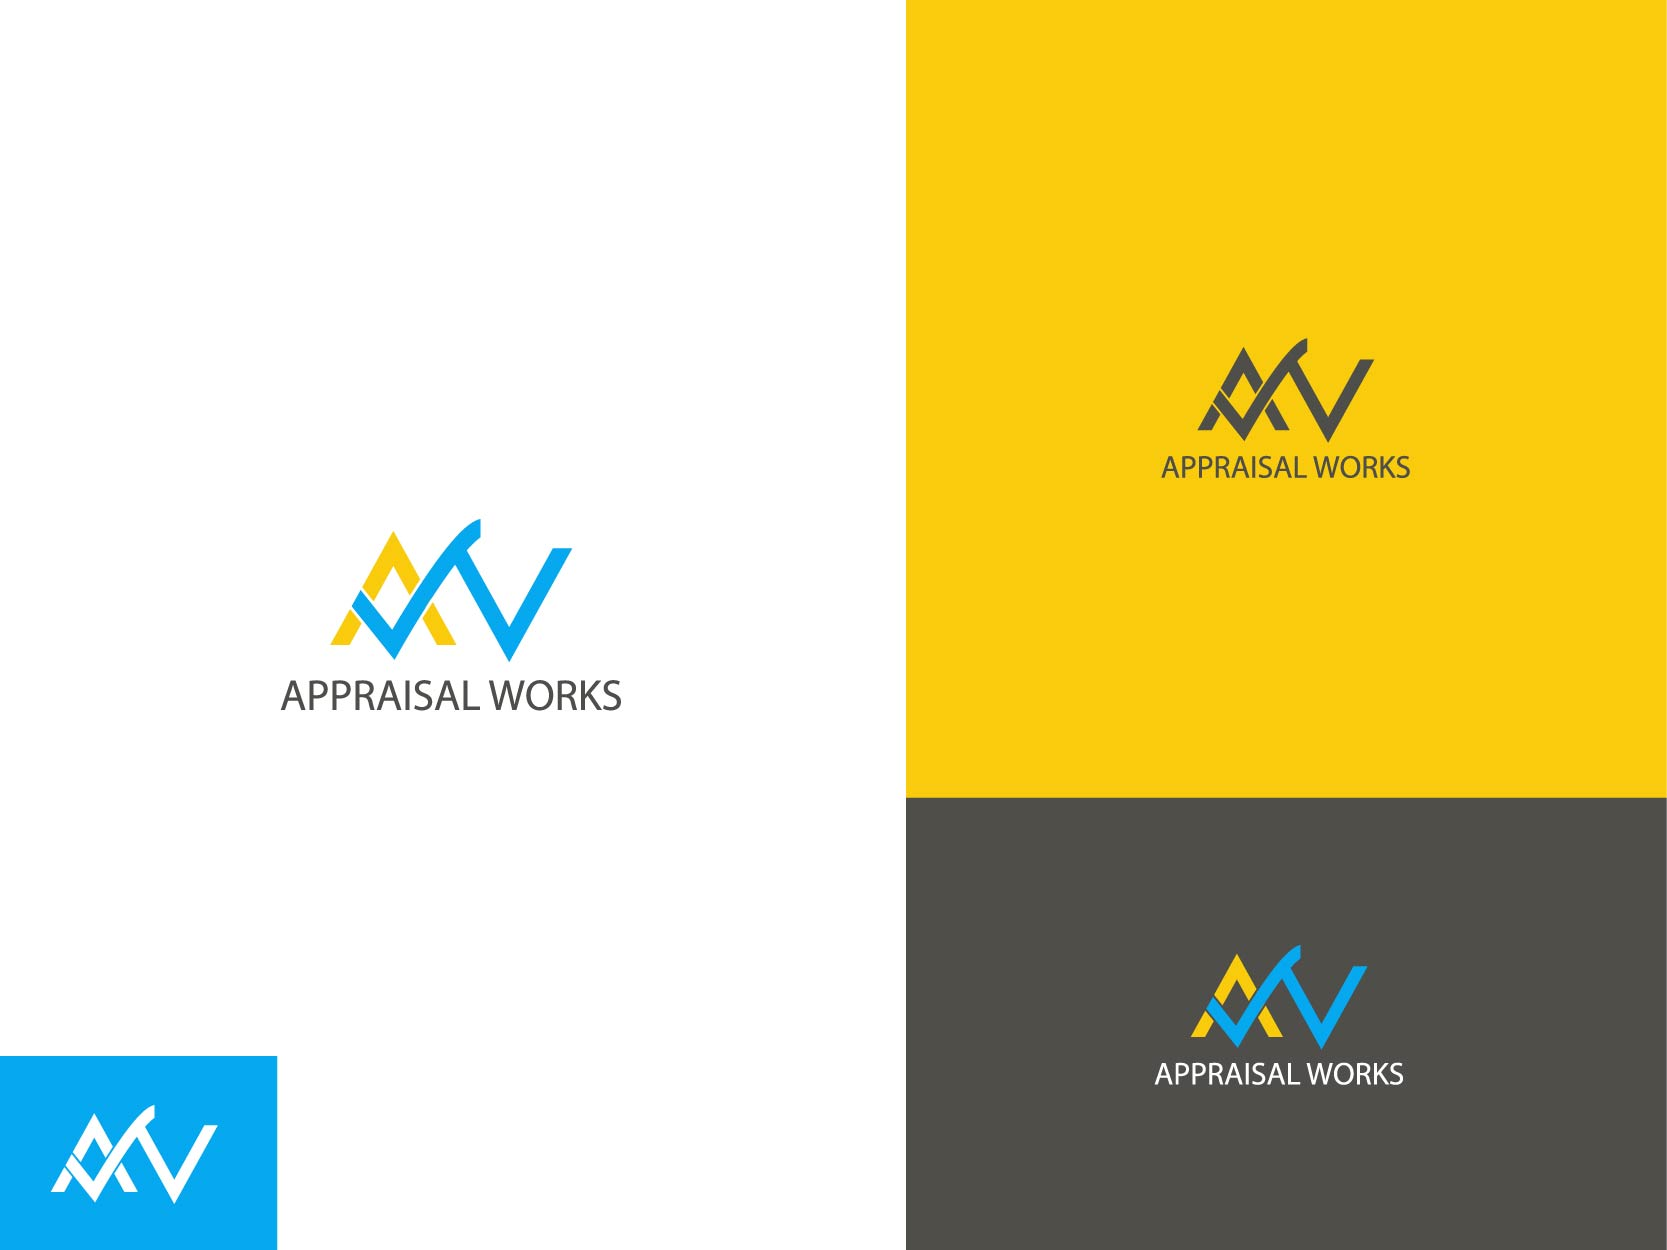 Logo Design by Osi Indra - Entry No. 46 in the Logo Design Contest Appraisal Works Logo Design.